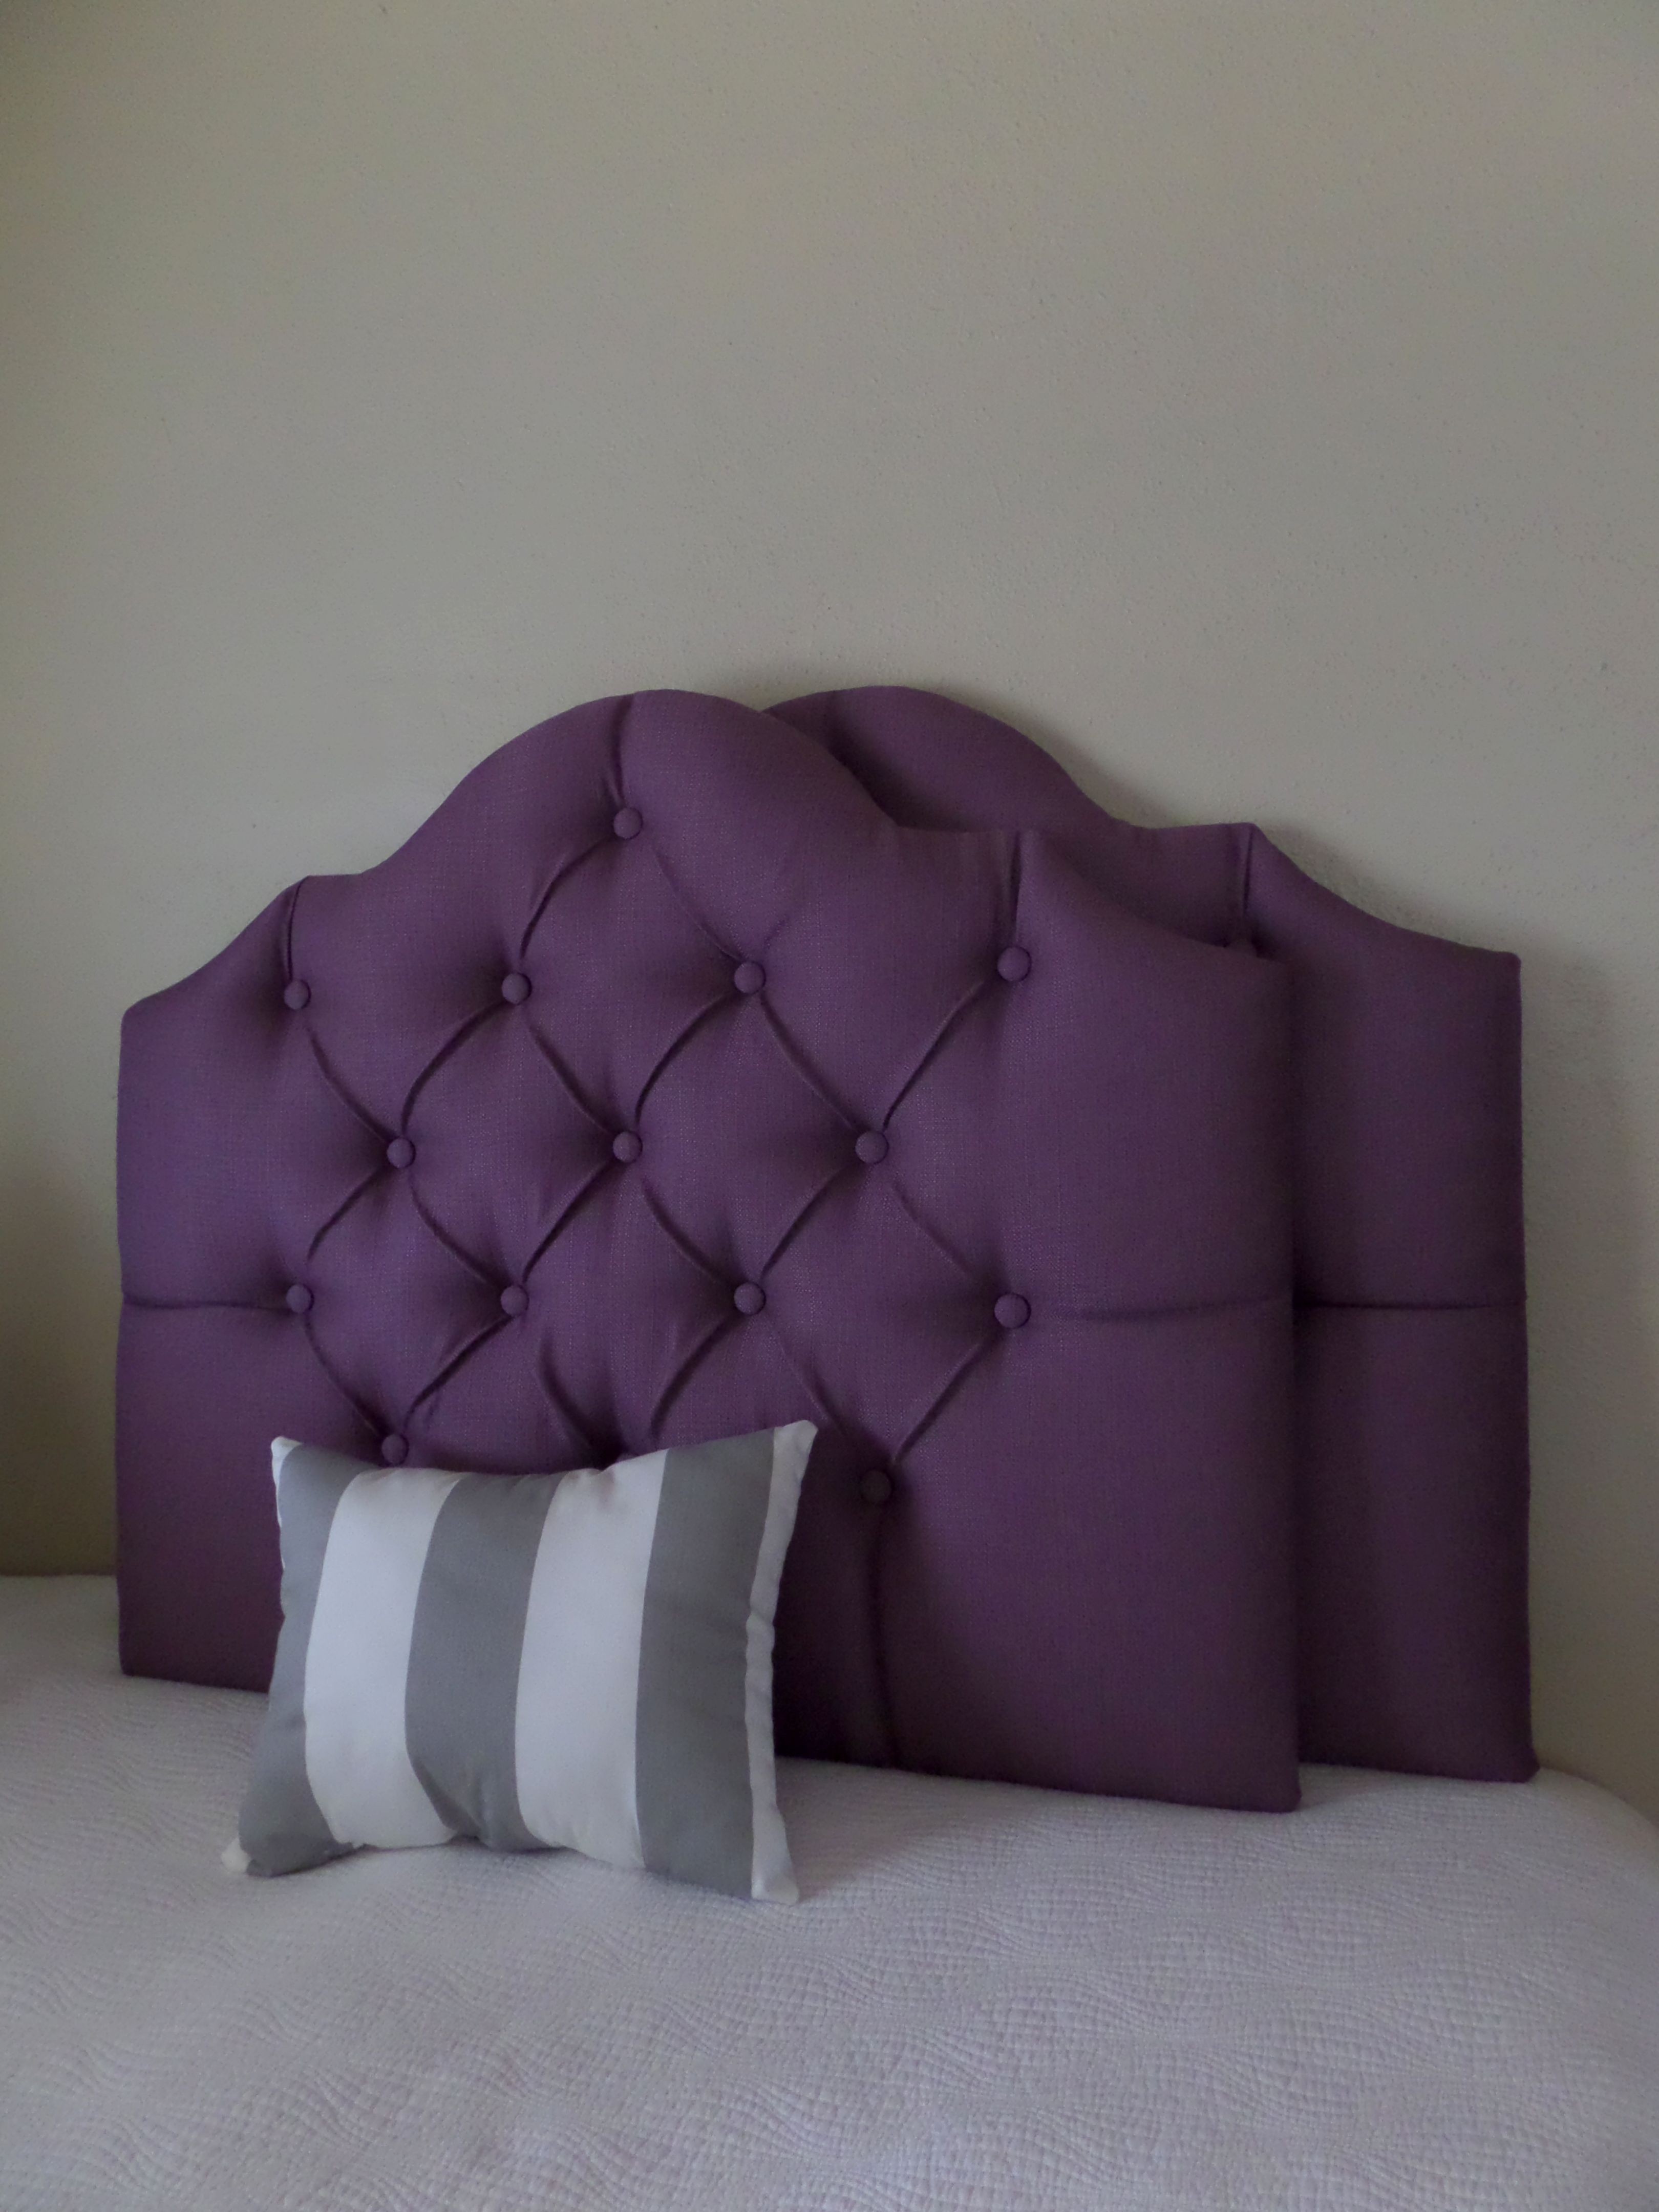 Twin size tufted upholstered headboard eggplant plum purple custom ...